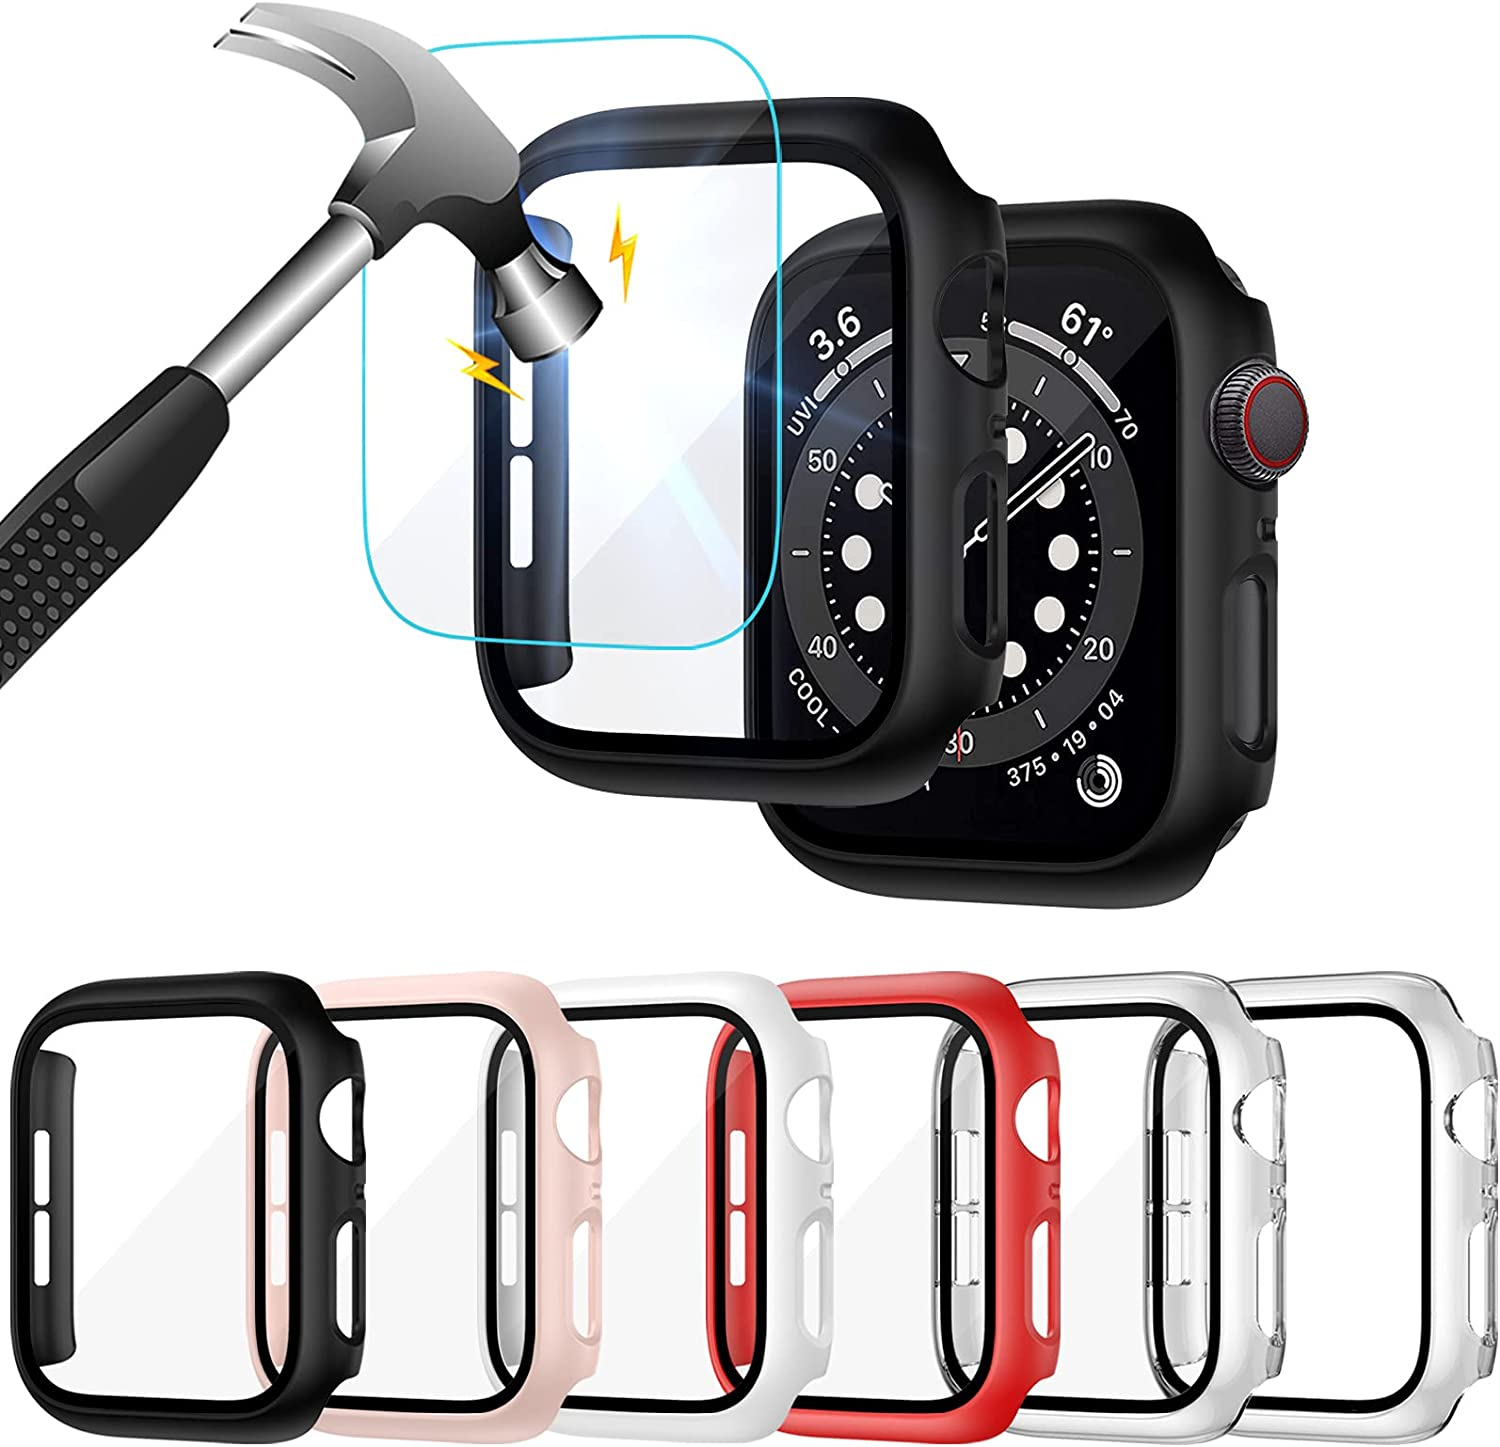 Liwin 6-Pack PC Case Built in Tempered Glass Screen Protector Compatible with Apple Watch SE/Series 6 / Series 5 / Series 4 40mm, Hard PC Full Protective Cover Bumper Compatible with iWatch 40mm